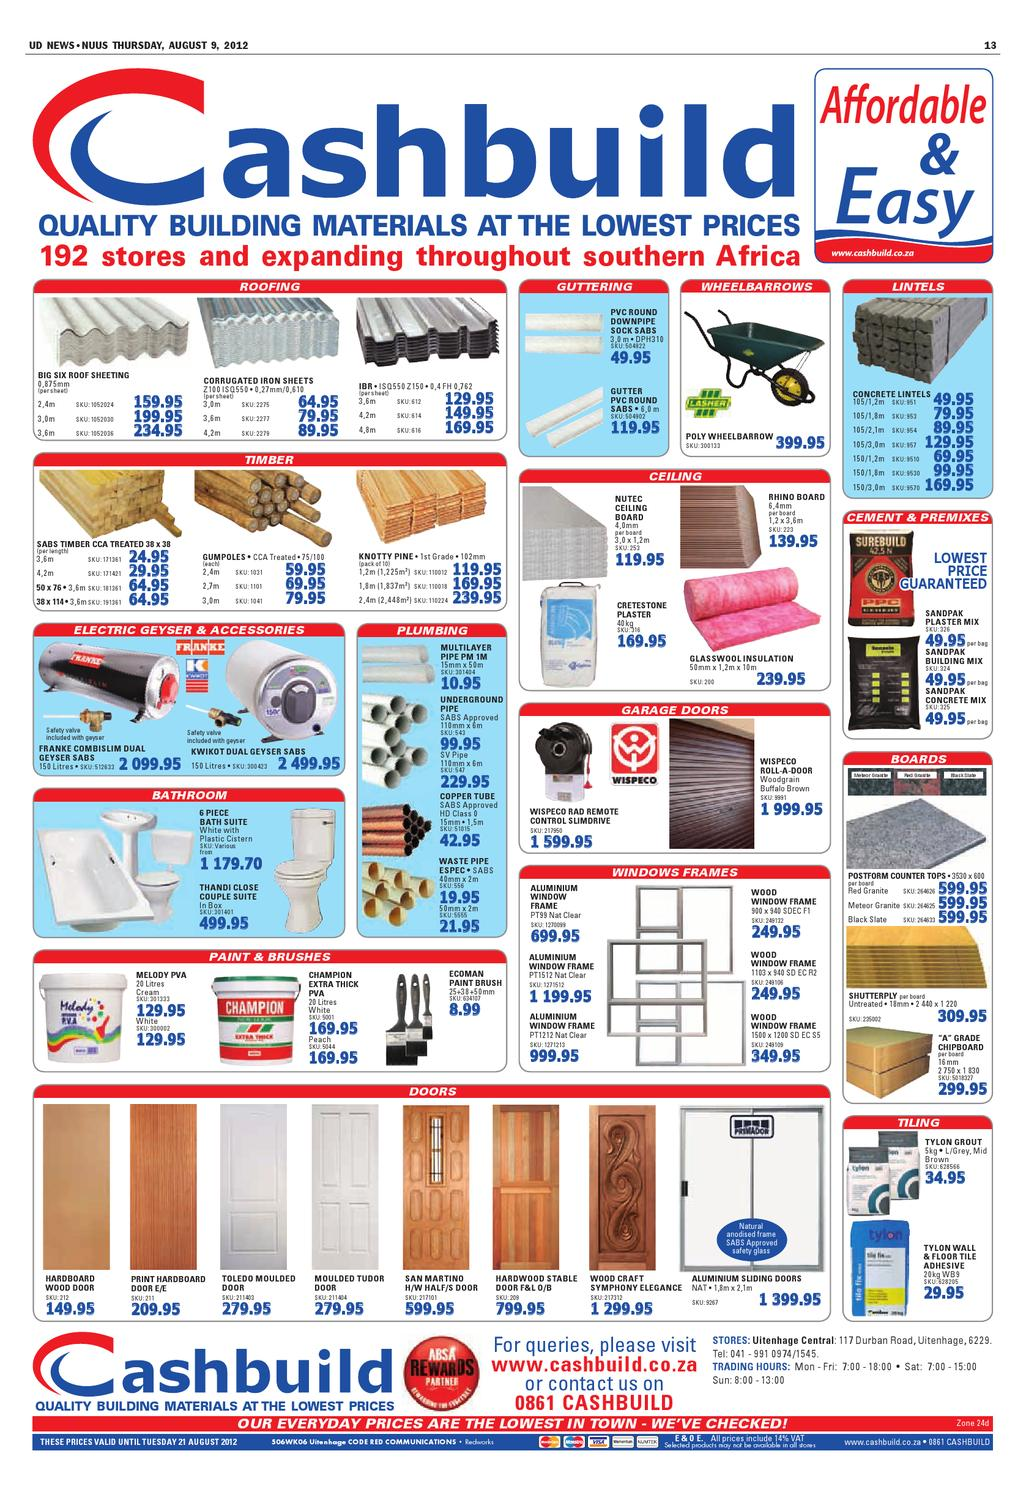 Ud News 09 08 2012 By Ud Express Issuu